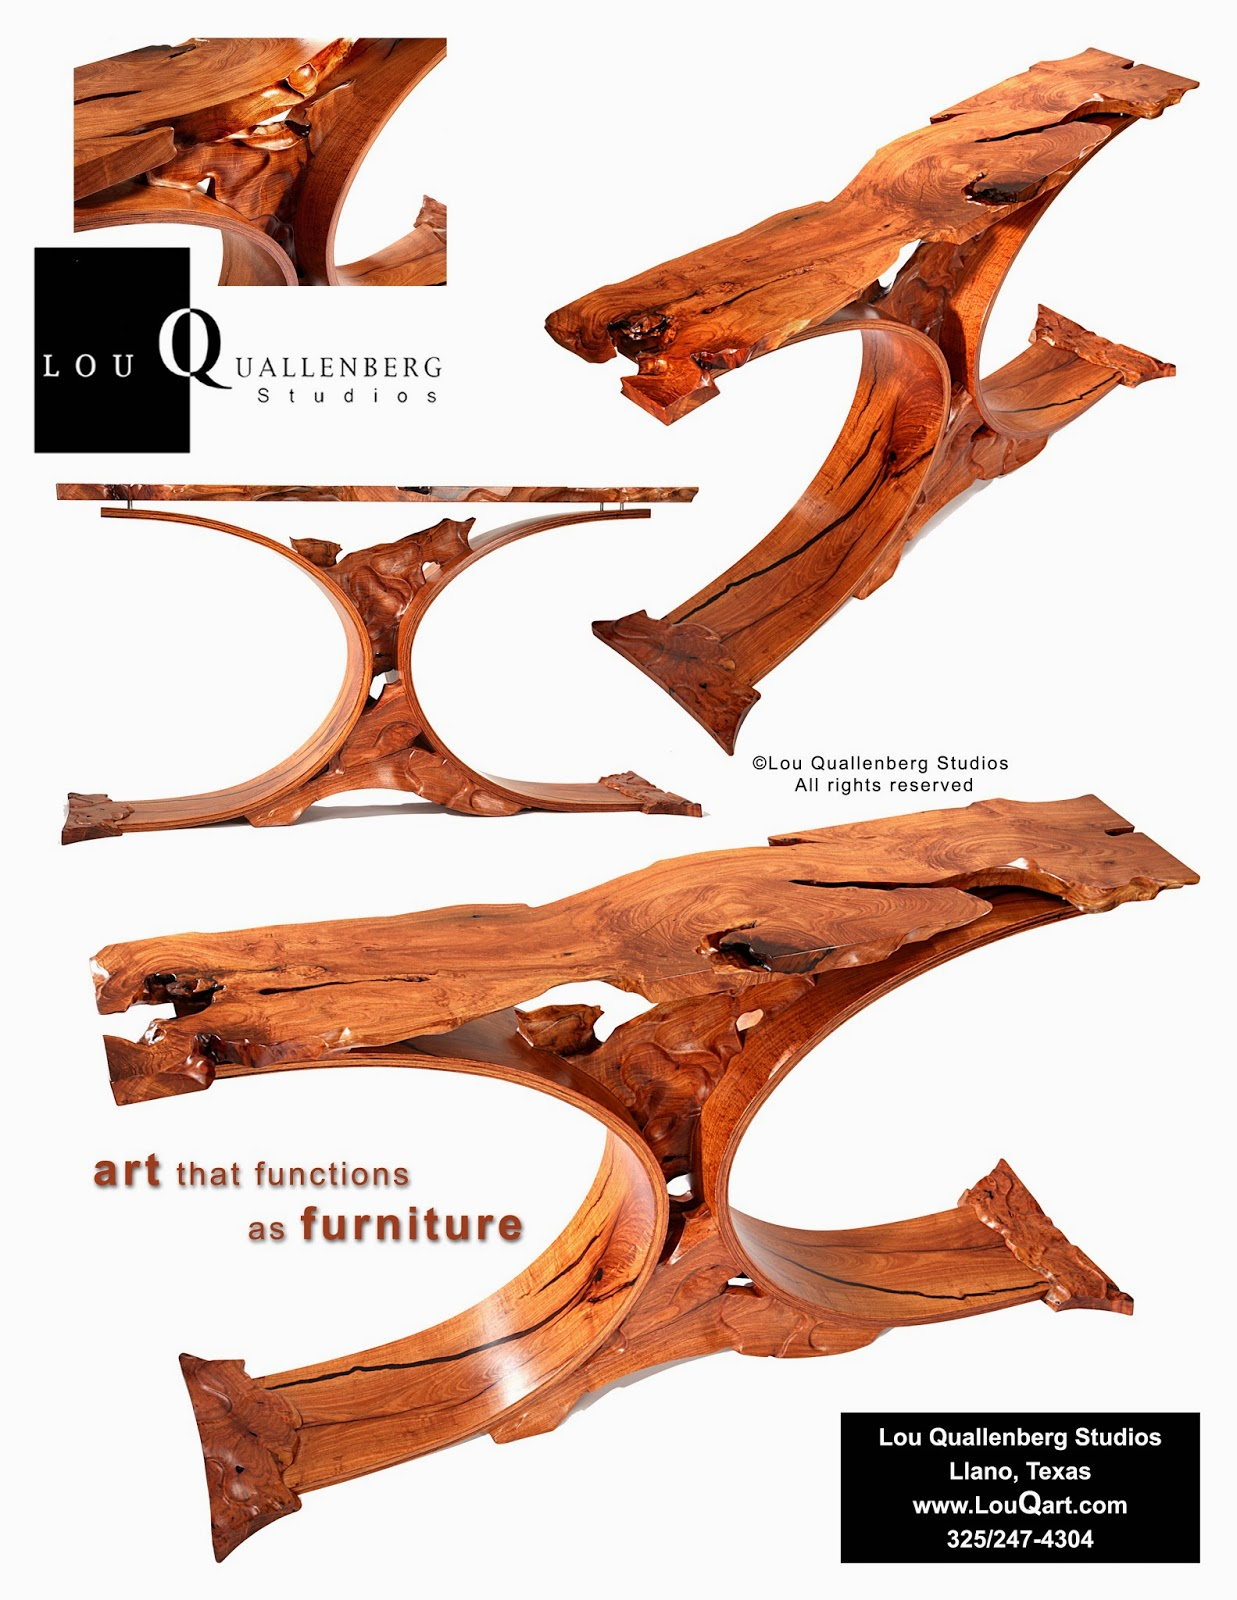 Mesquite Furniture: Lou Quallenberg Studios